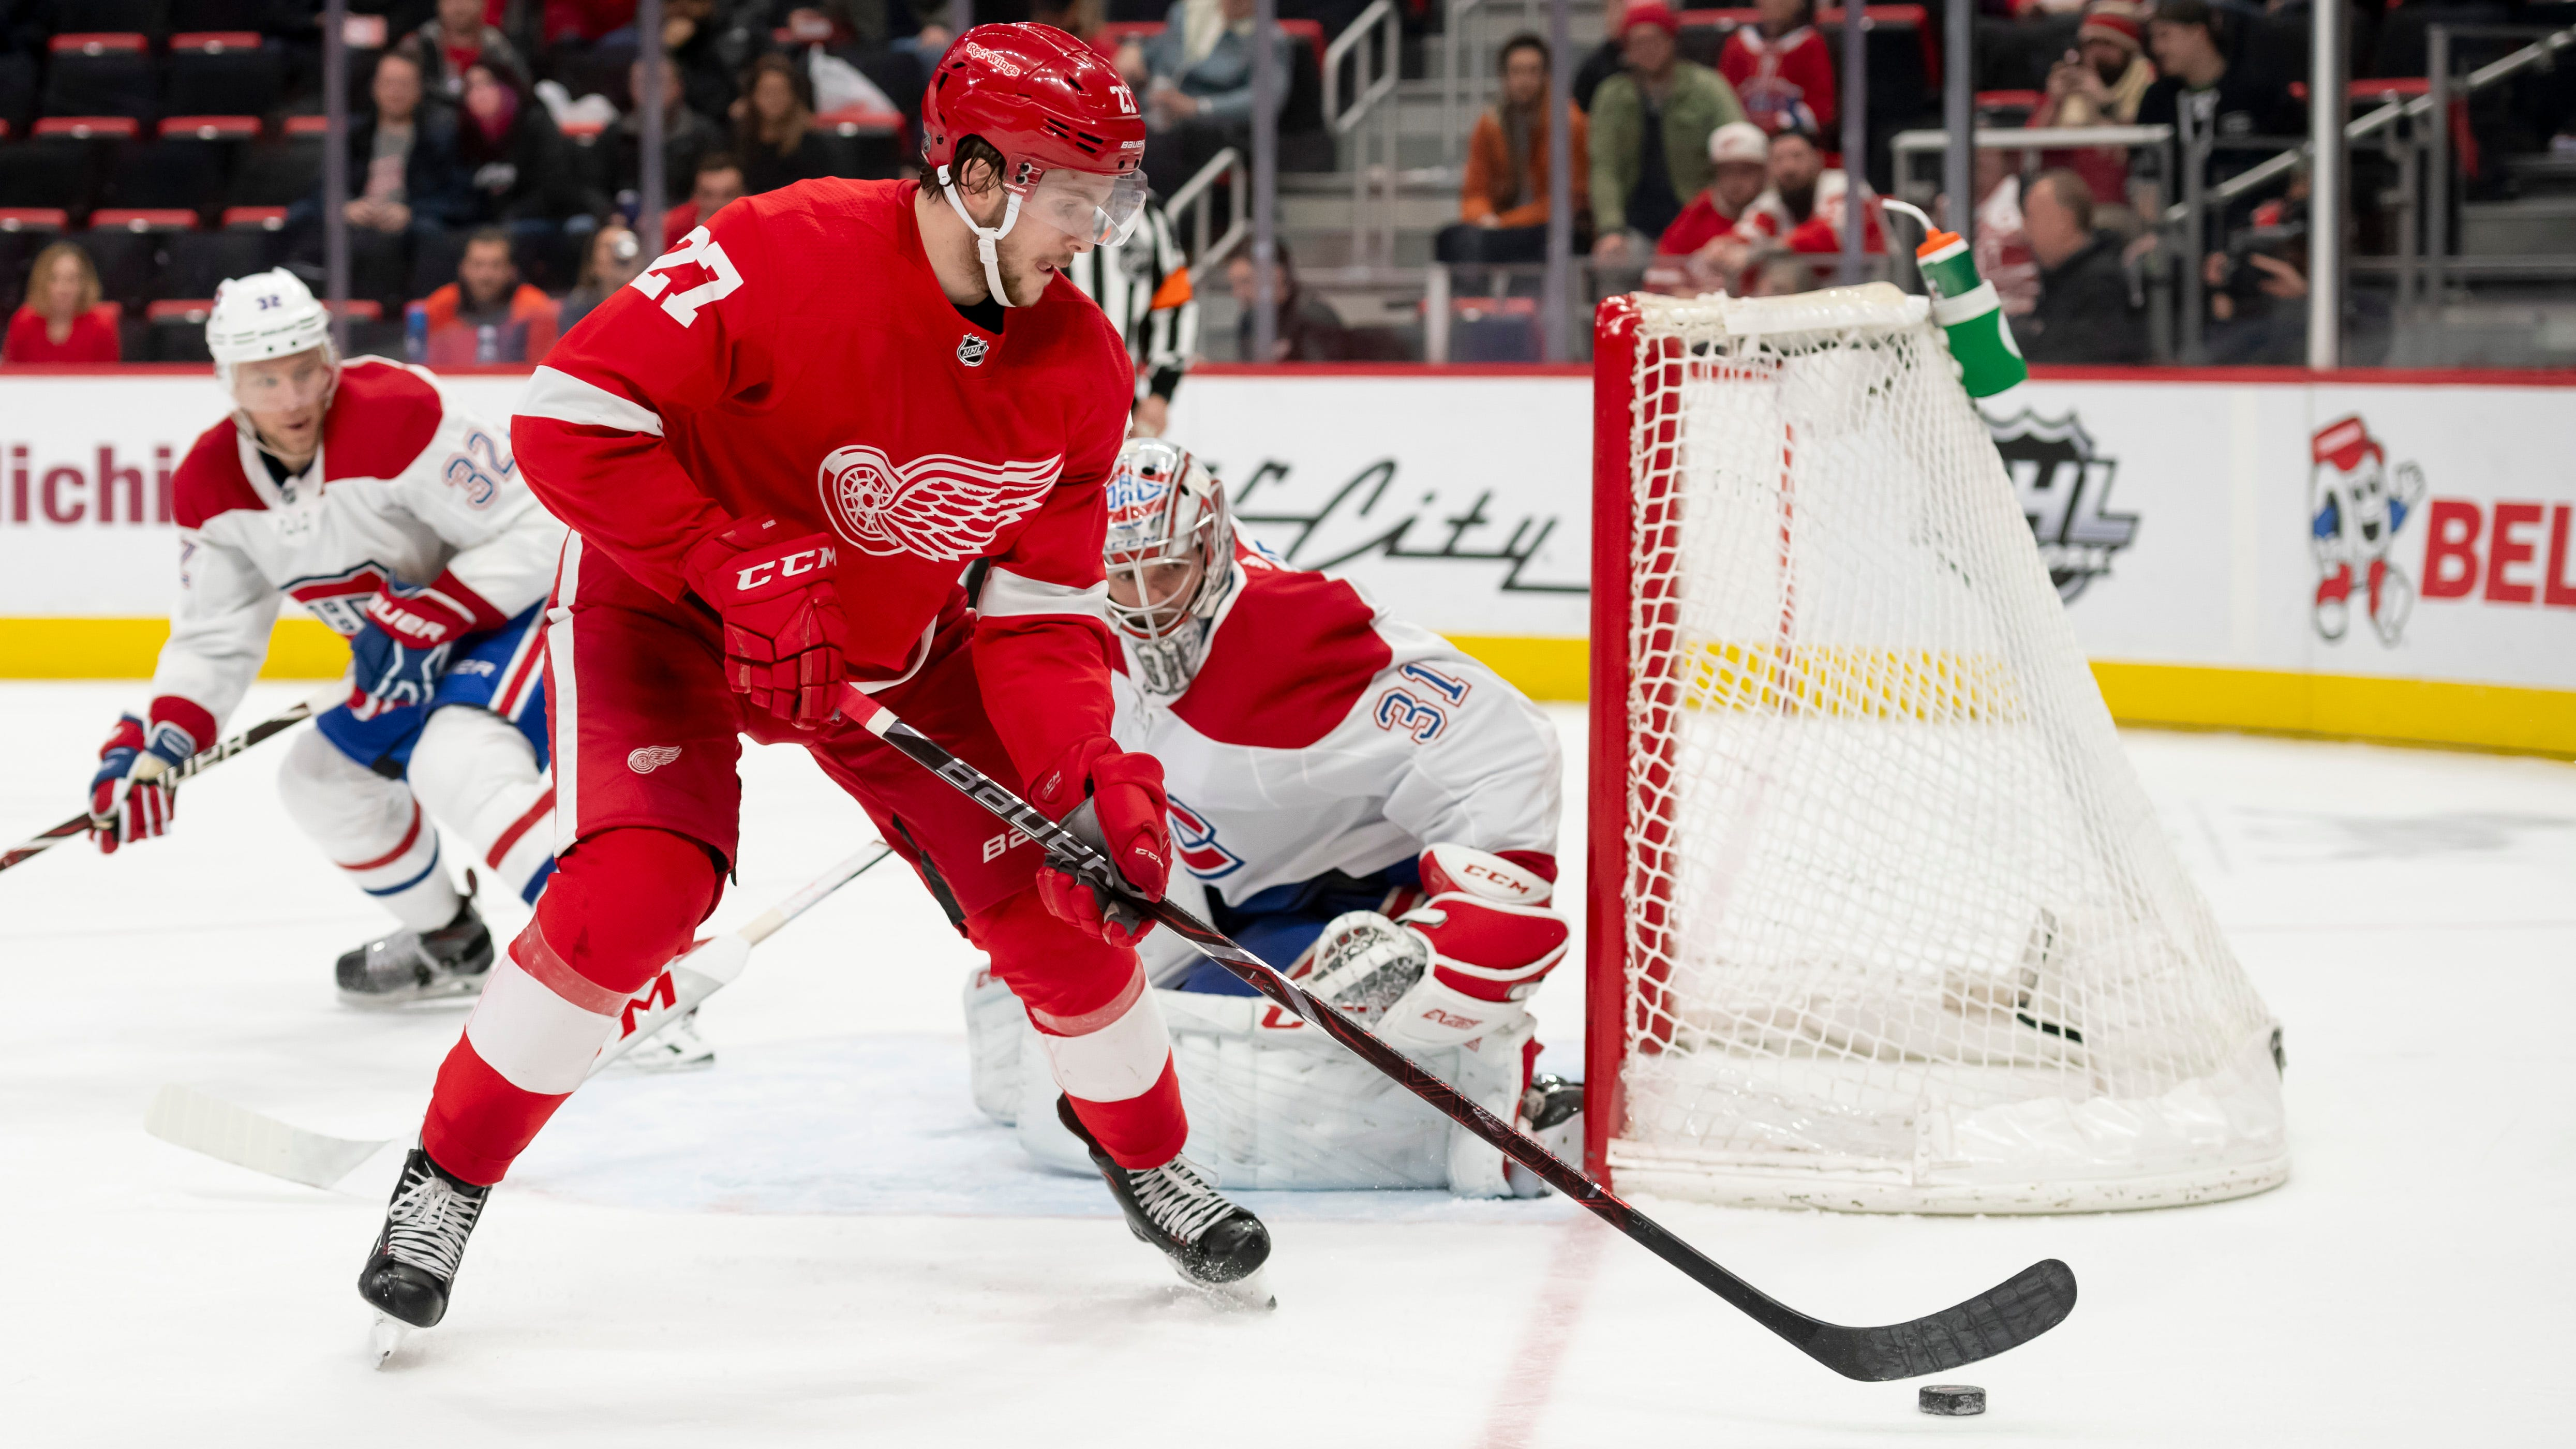 Red Wings' Michael Rasmussen learning NHL tricks during difficult season